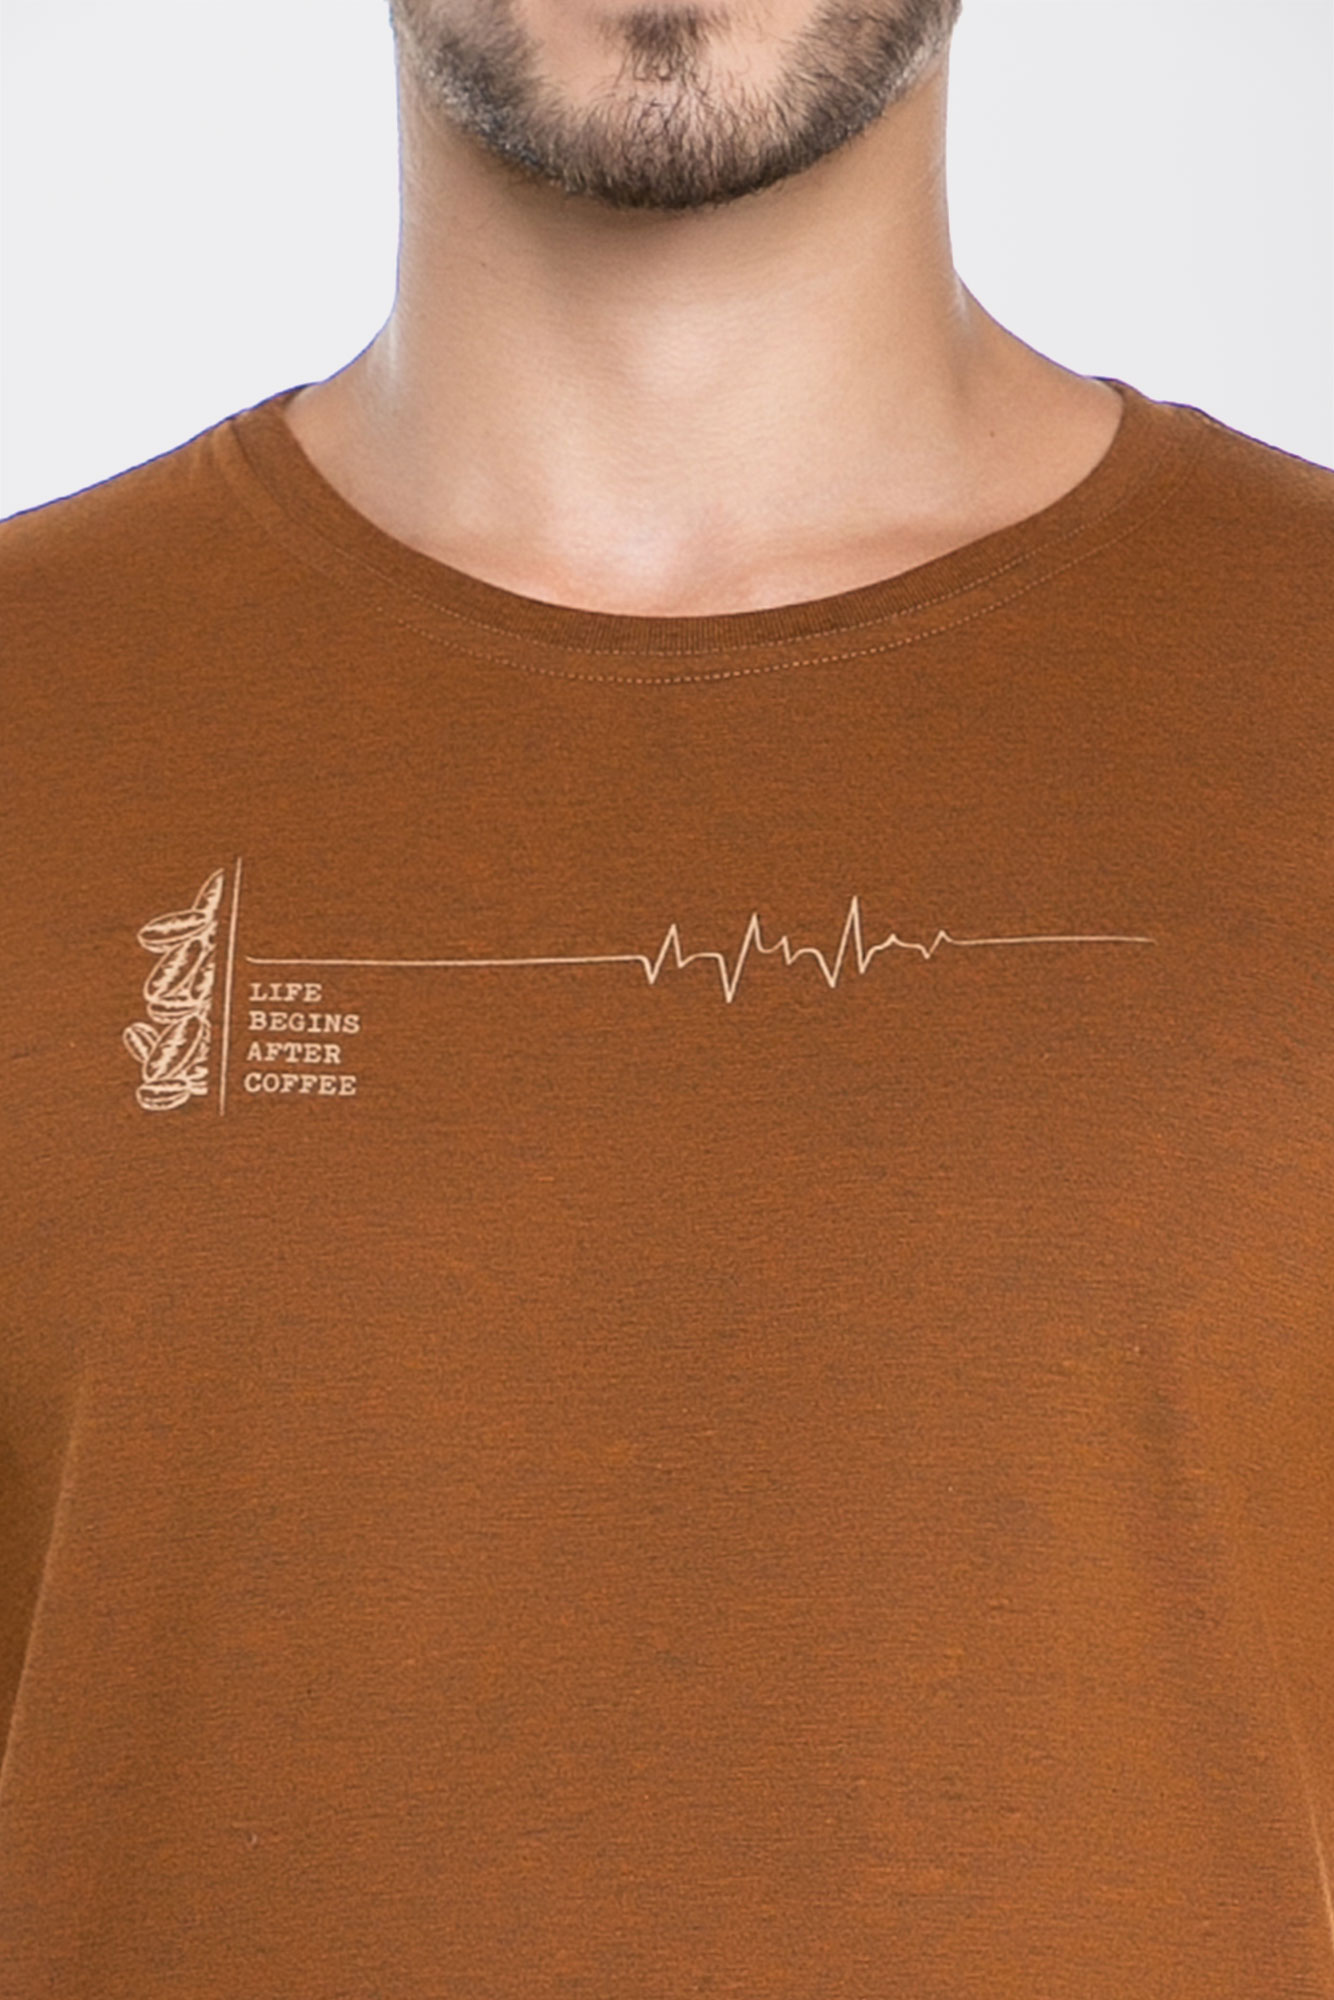 Camiseta After Coffee Caramelo